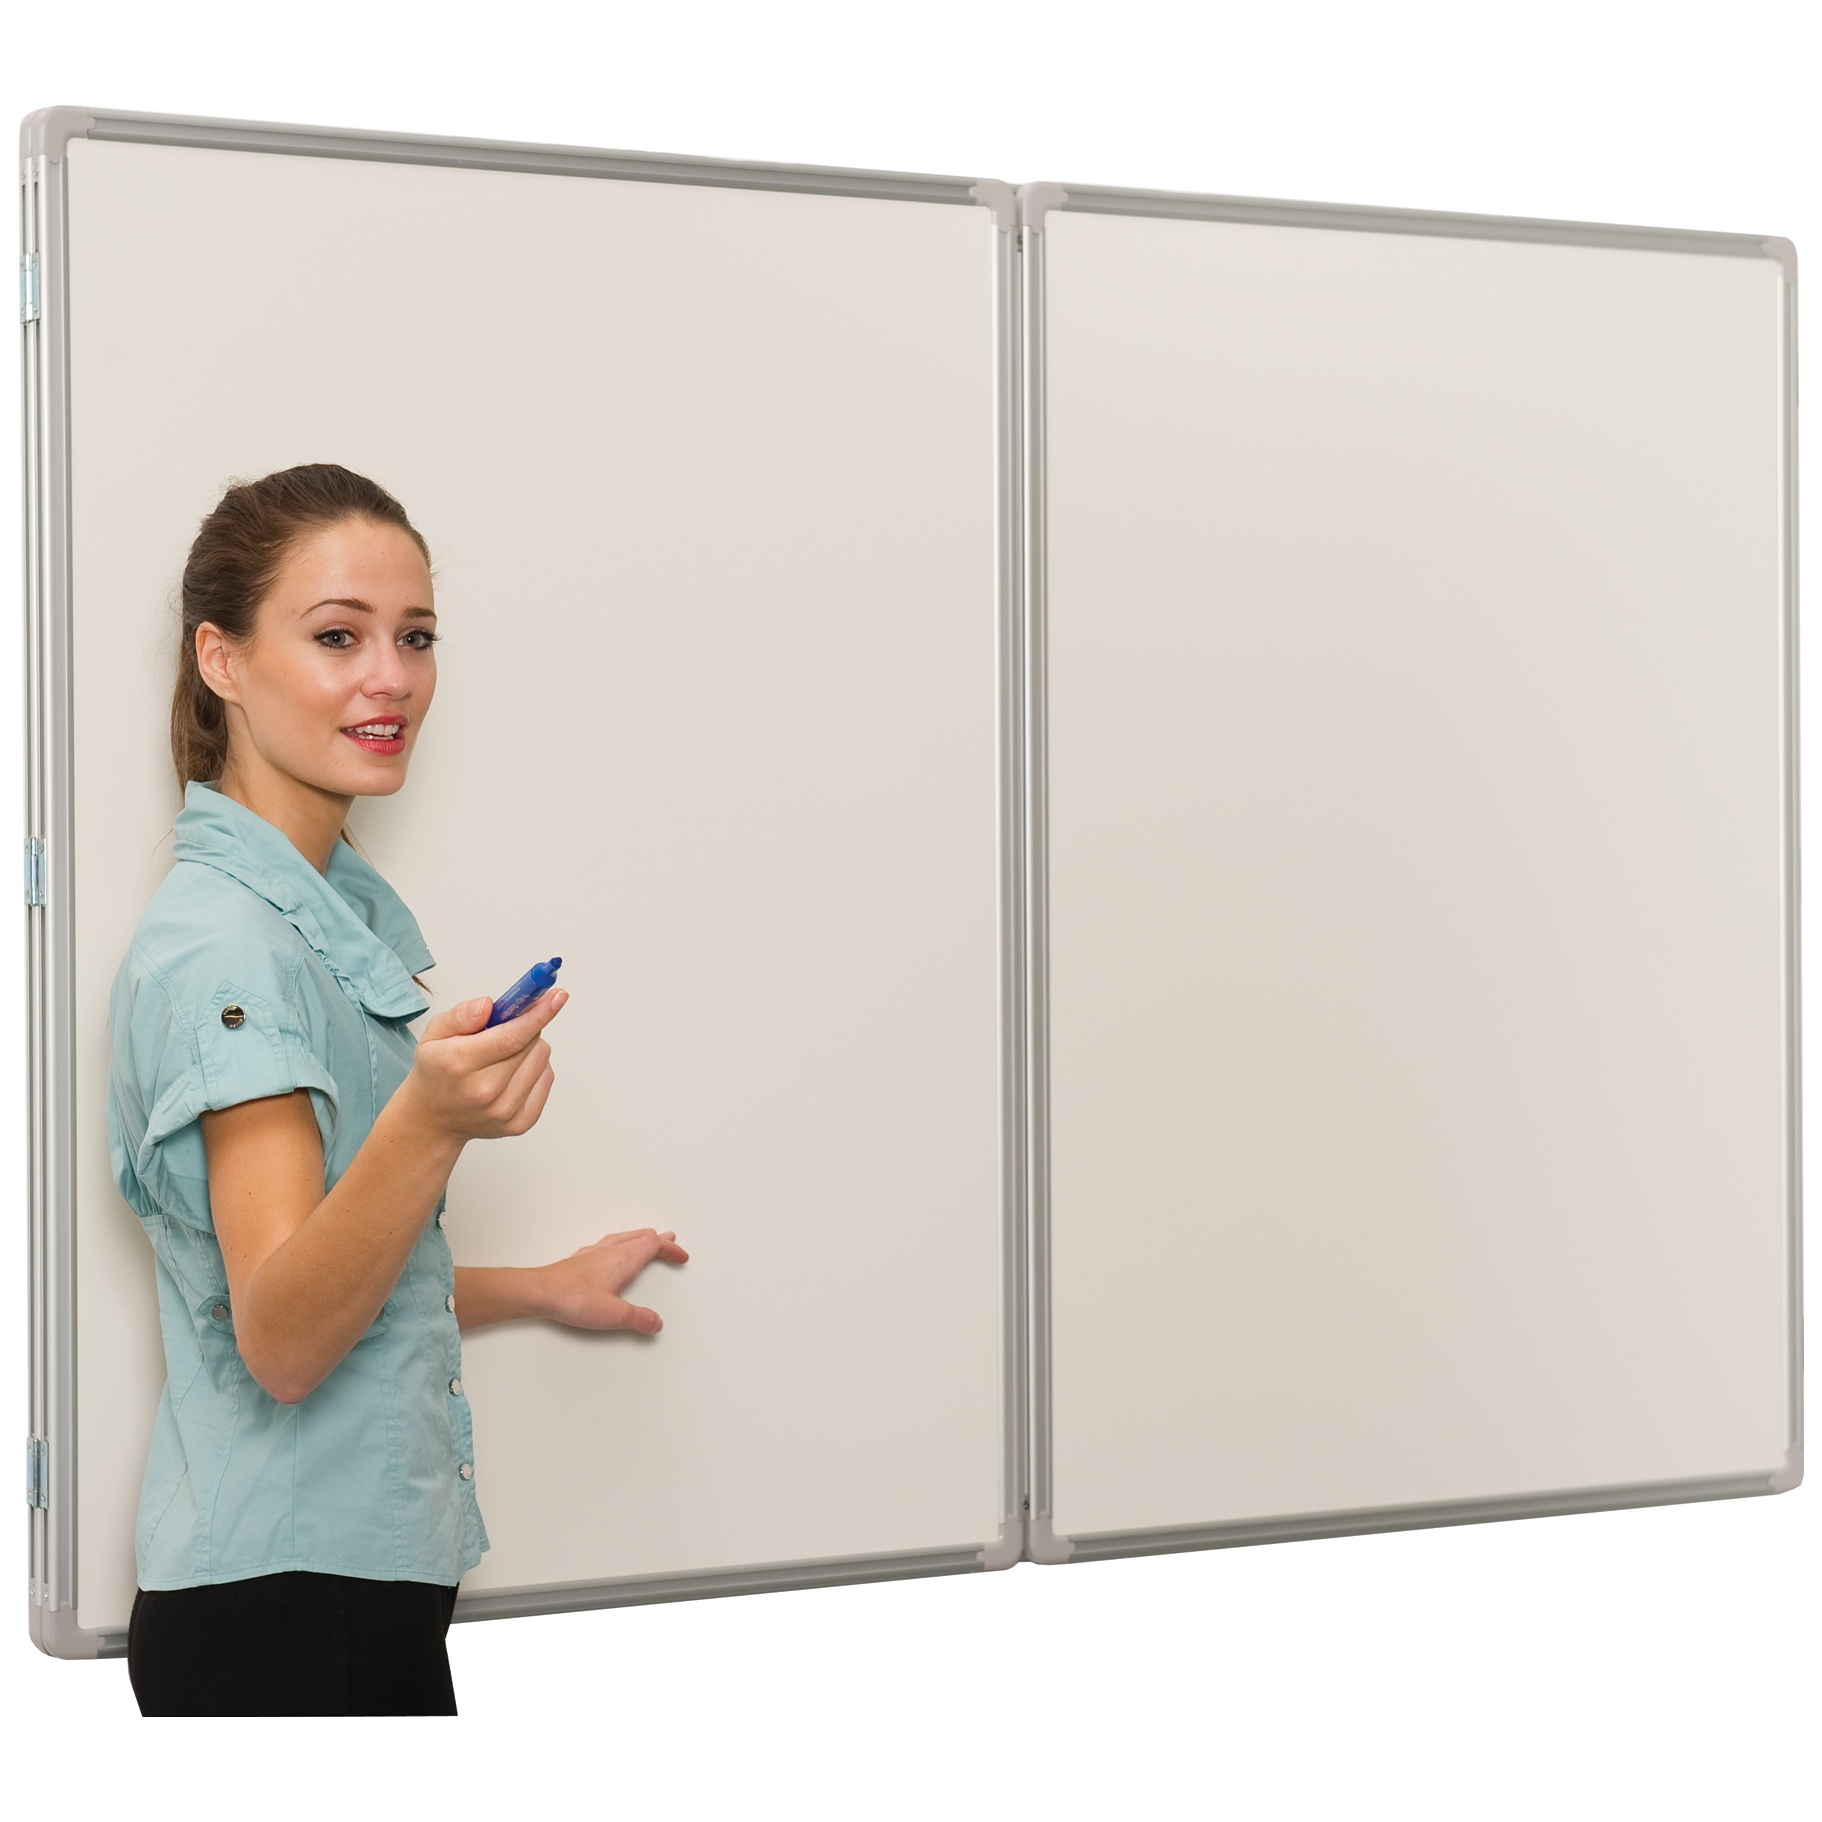 Space-Saver Whiteboard for Teachers